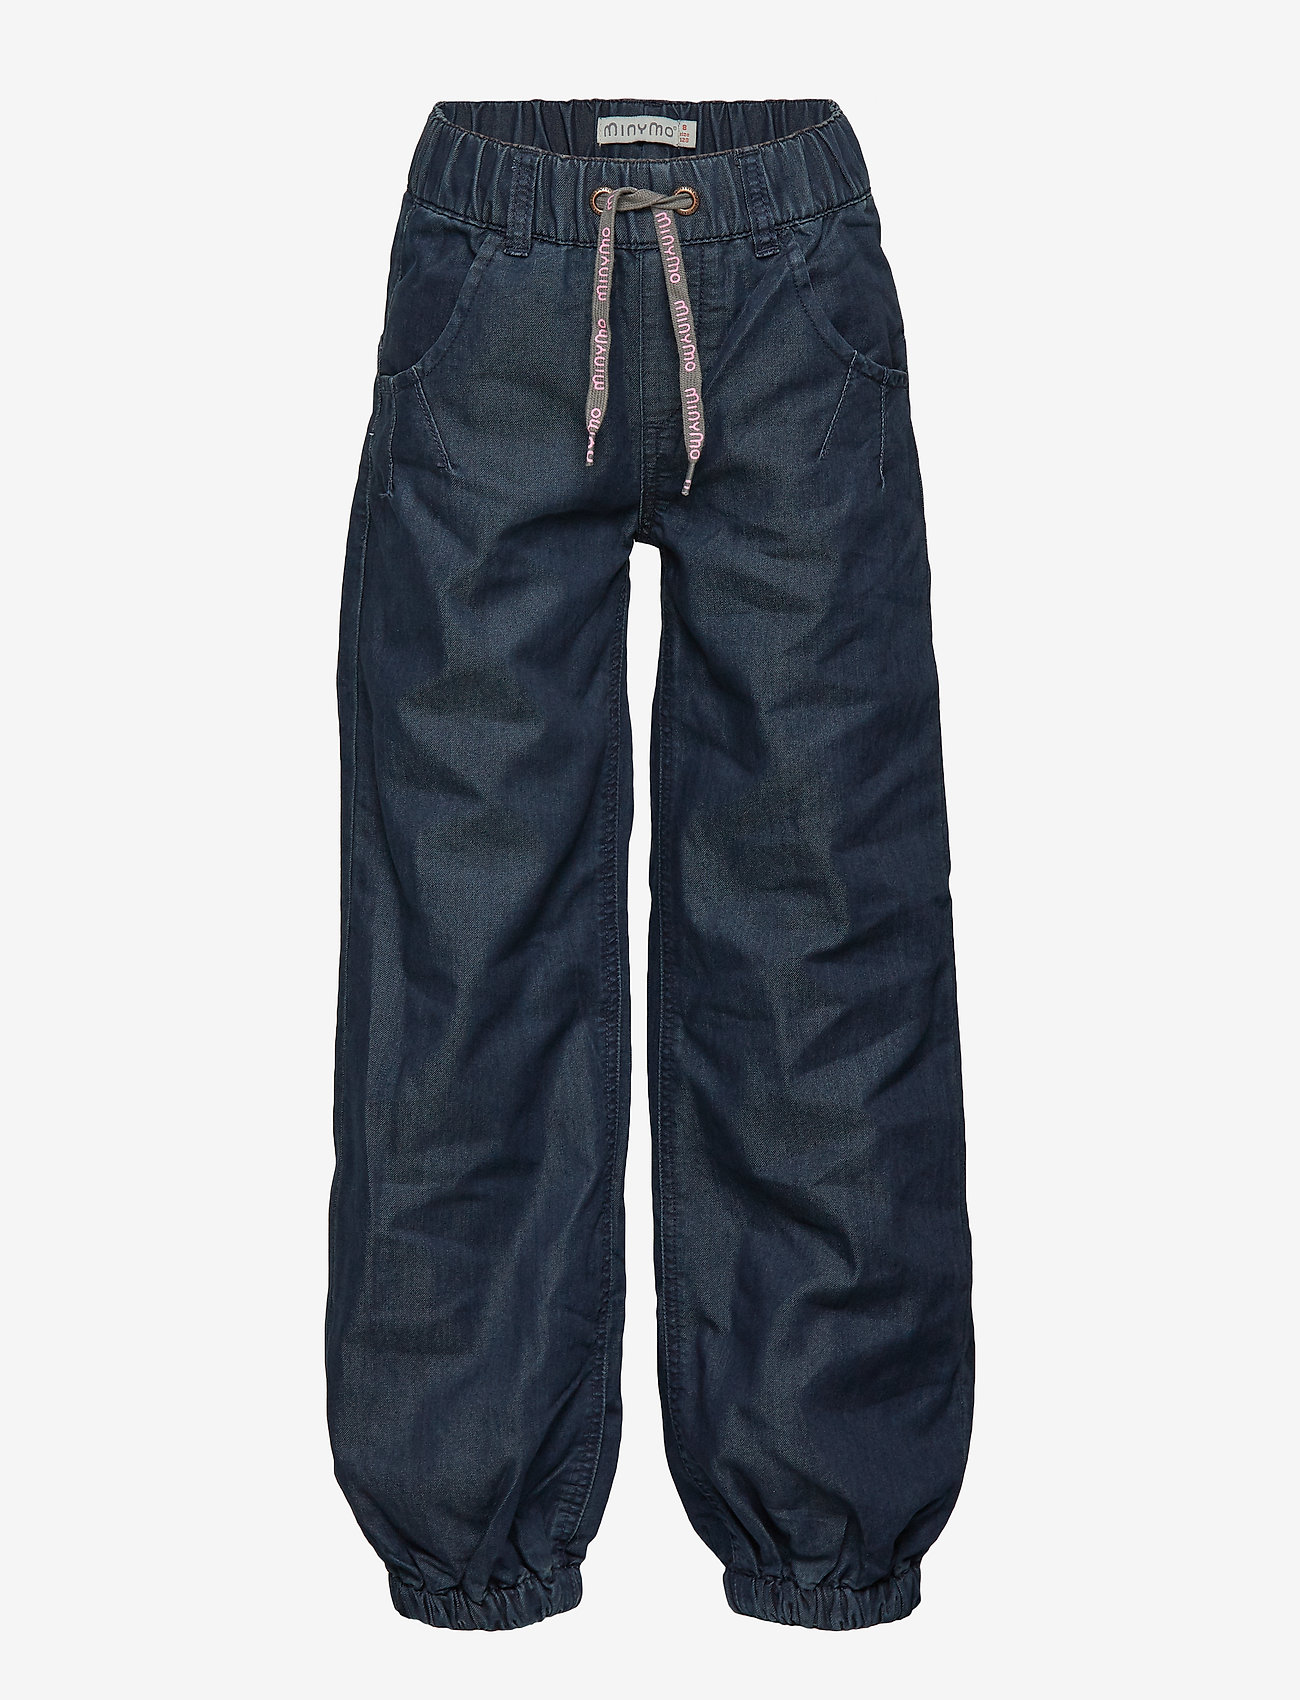 Minymo - Baggy pant -GIRL - broeken - dark blue - 0